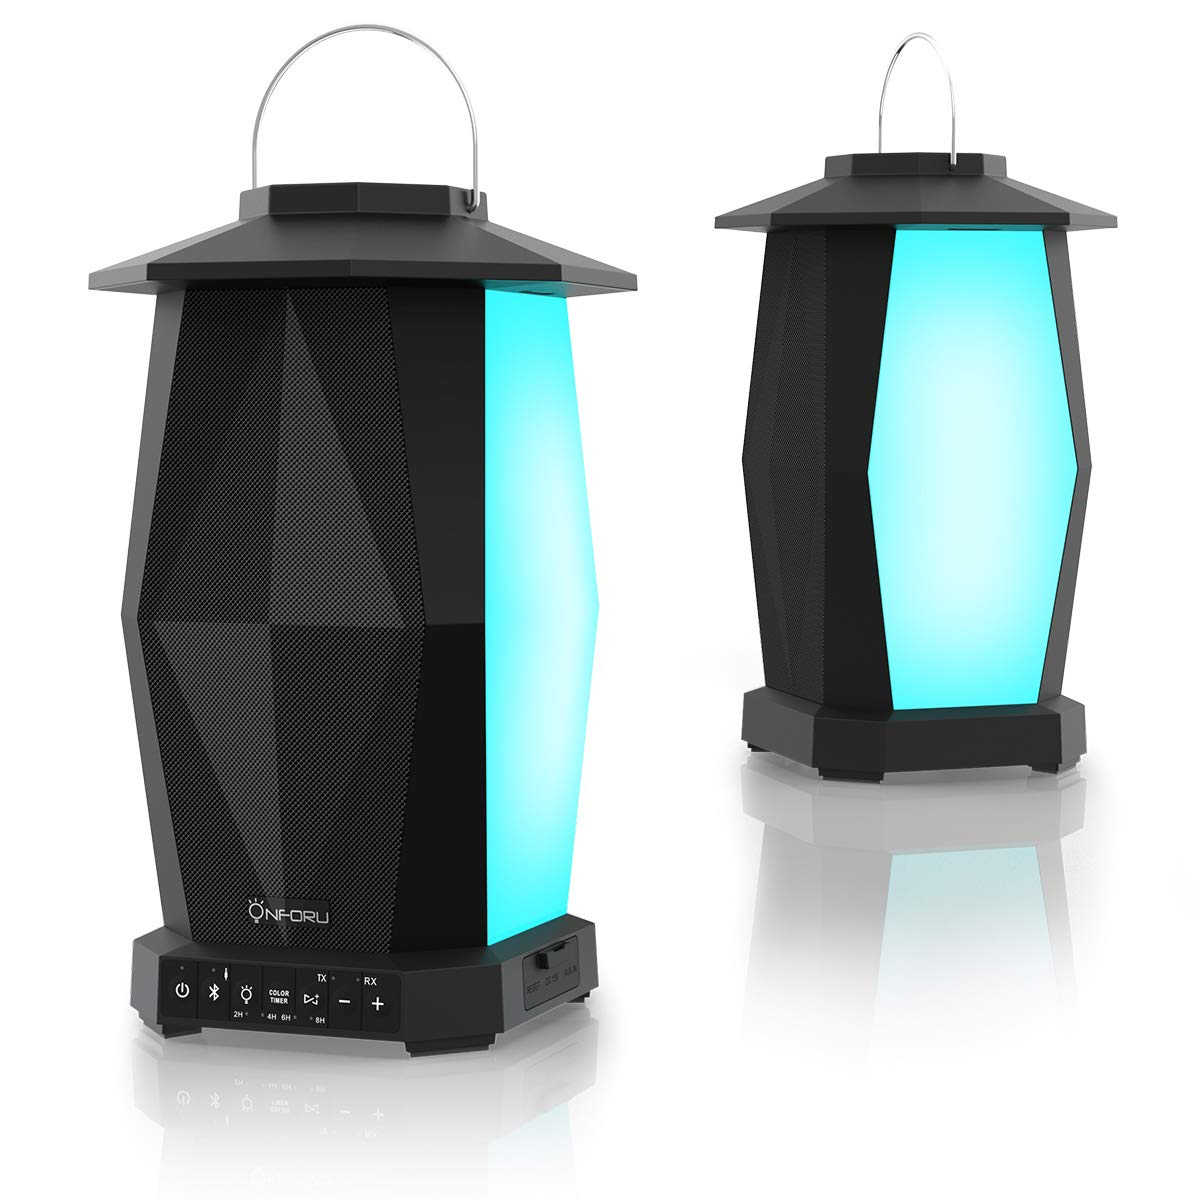 Onforu Bluetooth Speaker, 2 Pack 25W Waterproof Outdoor Lantern Speaker, Support Max.100 Speakers Synchronous Play, with HD Stereo Sound, Deep Bass, Mood Lights, 100ft Paring Range. (Bluetooth V4.2)